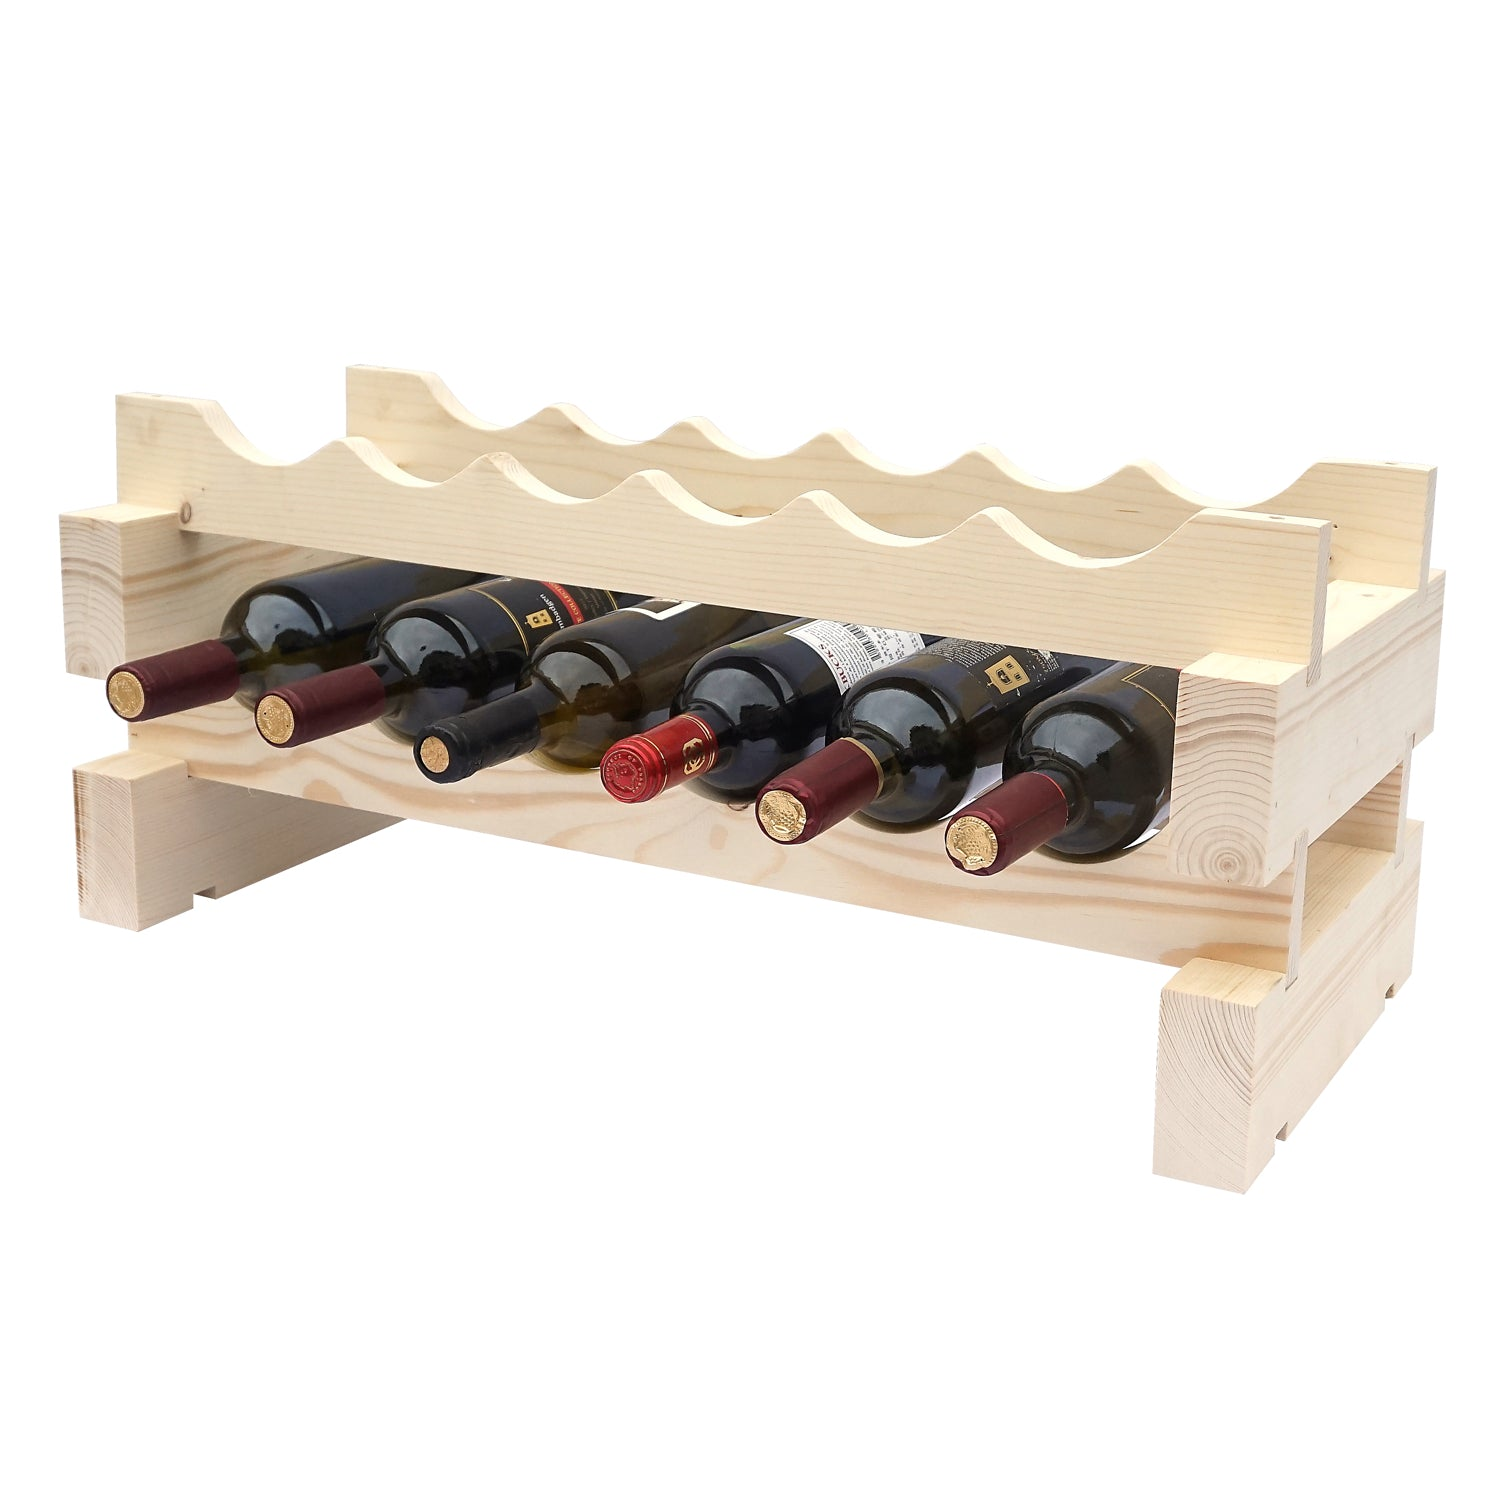 6 Bottle Modular Wine Rack